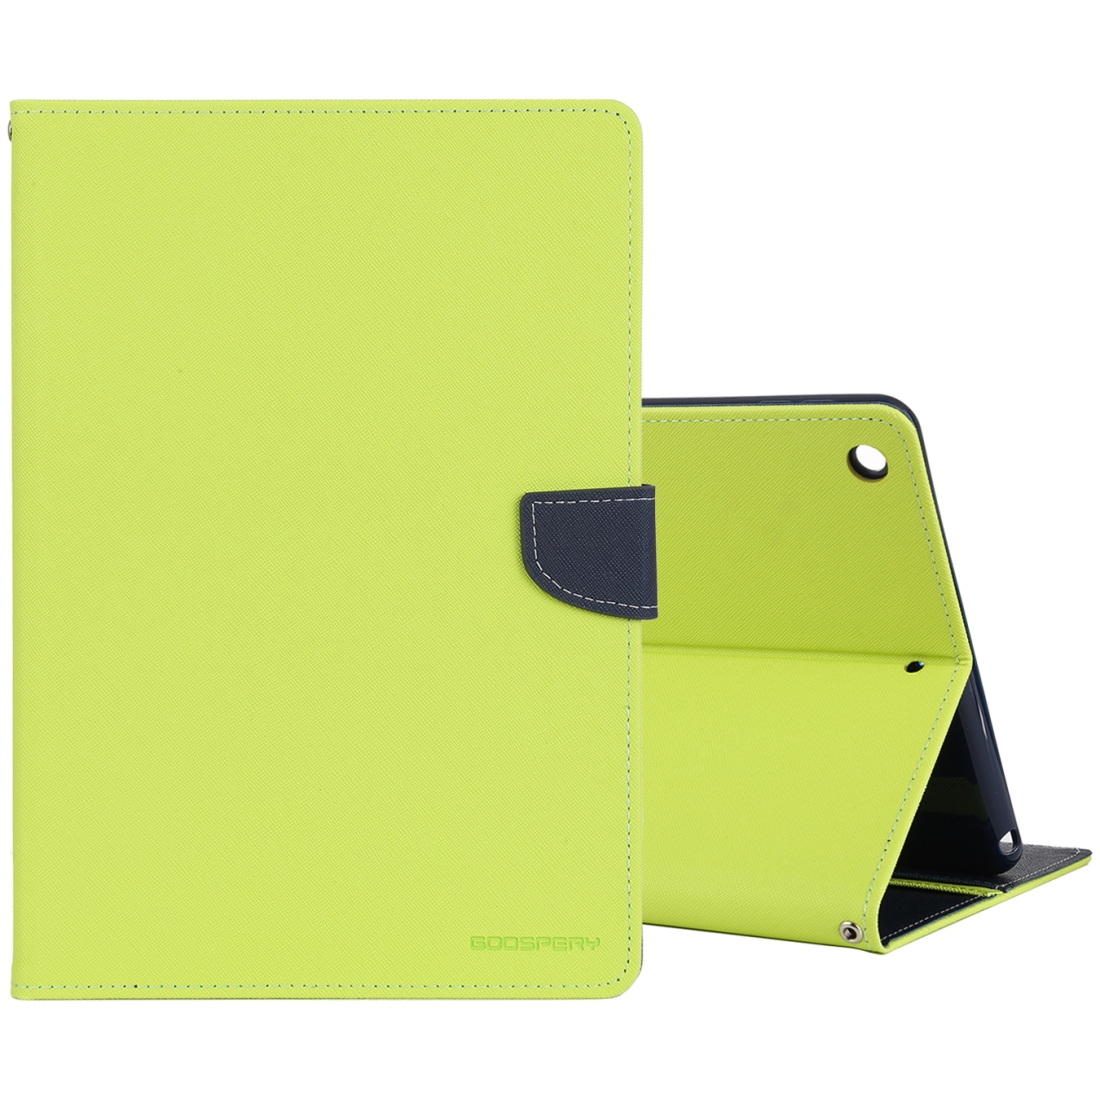 iPad 7th Generation Case (10.2 Inch) Cross Texture Leather Case with Sleeve & Slim Profile (Green)